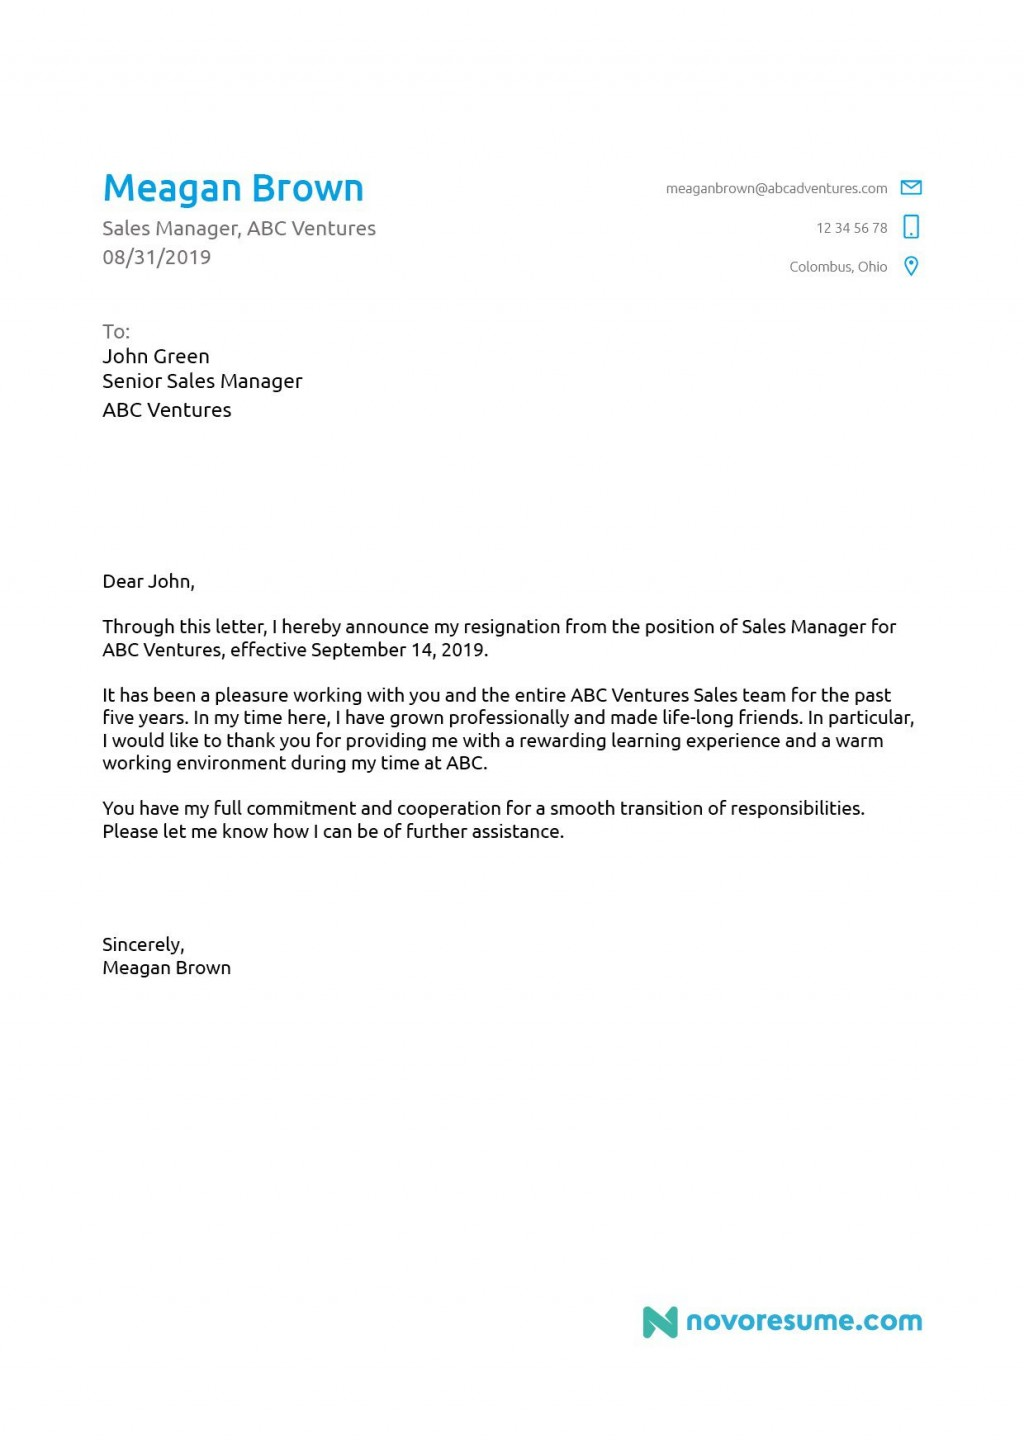 007 Fearsome Sample Resignation Letter Template Picture  For Teacher Word - Free DownloadableLarge